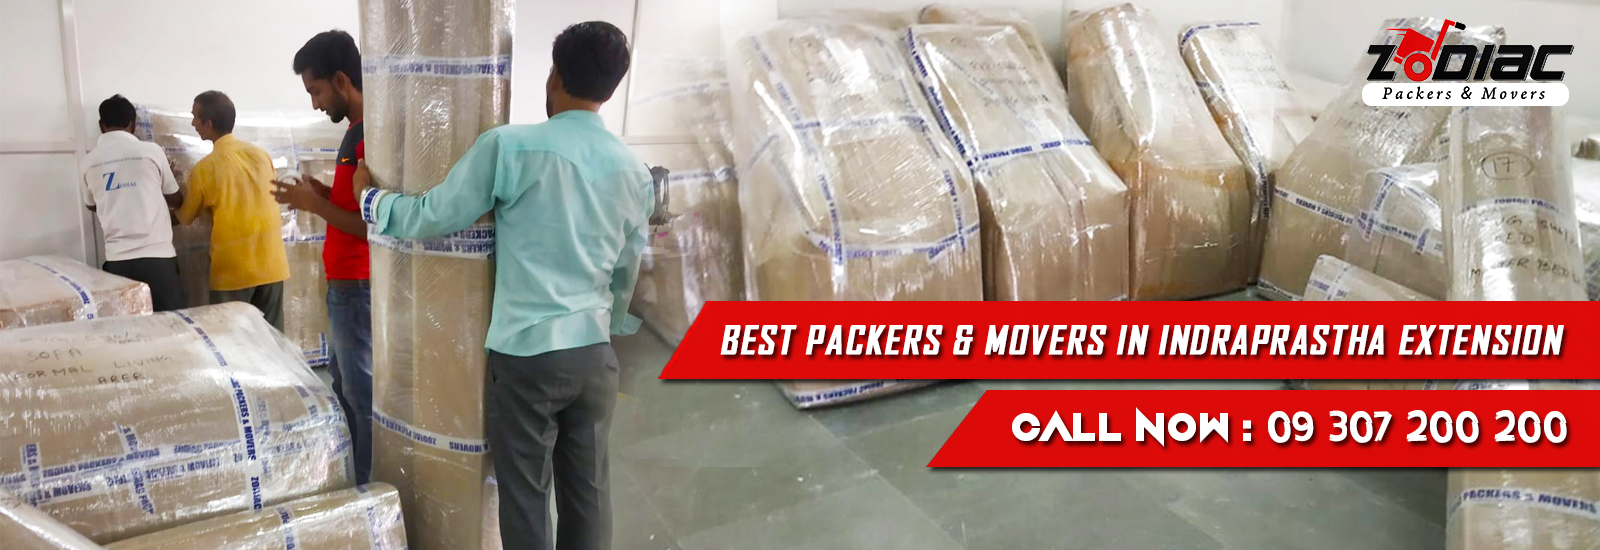 Packers and Movers in Indraprastha Extension